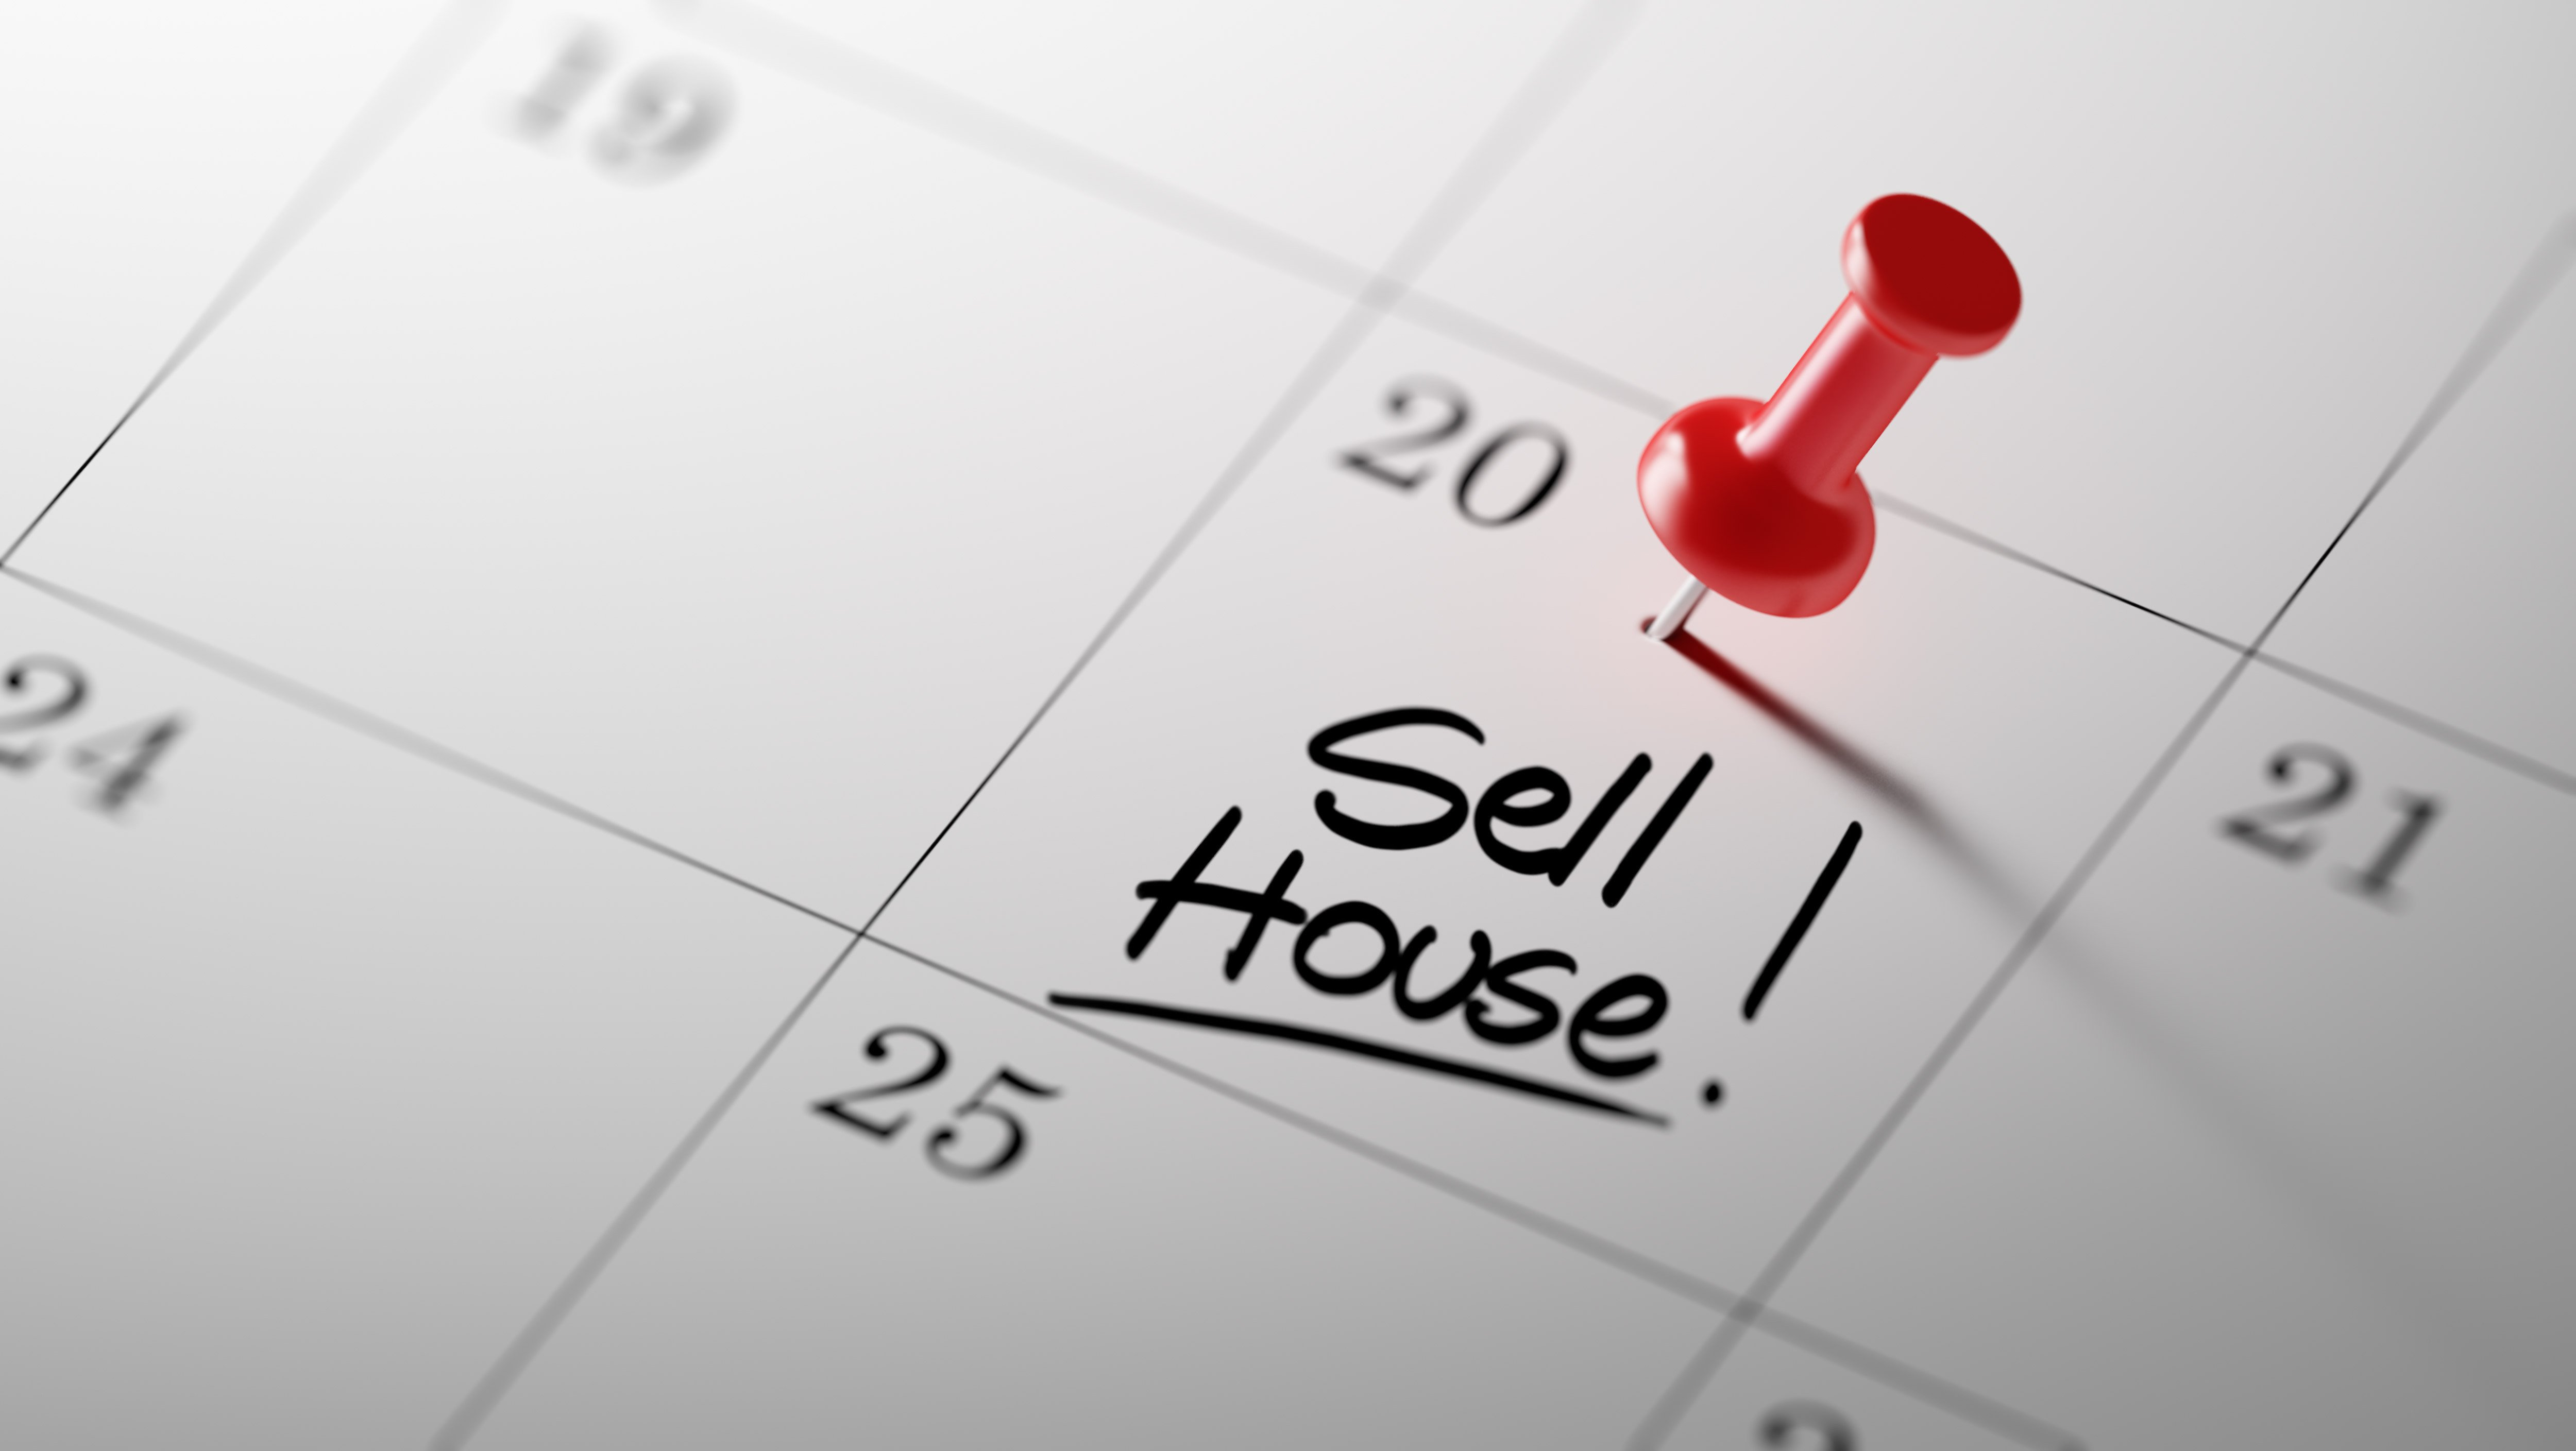 Sell house marked on calendar